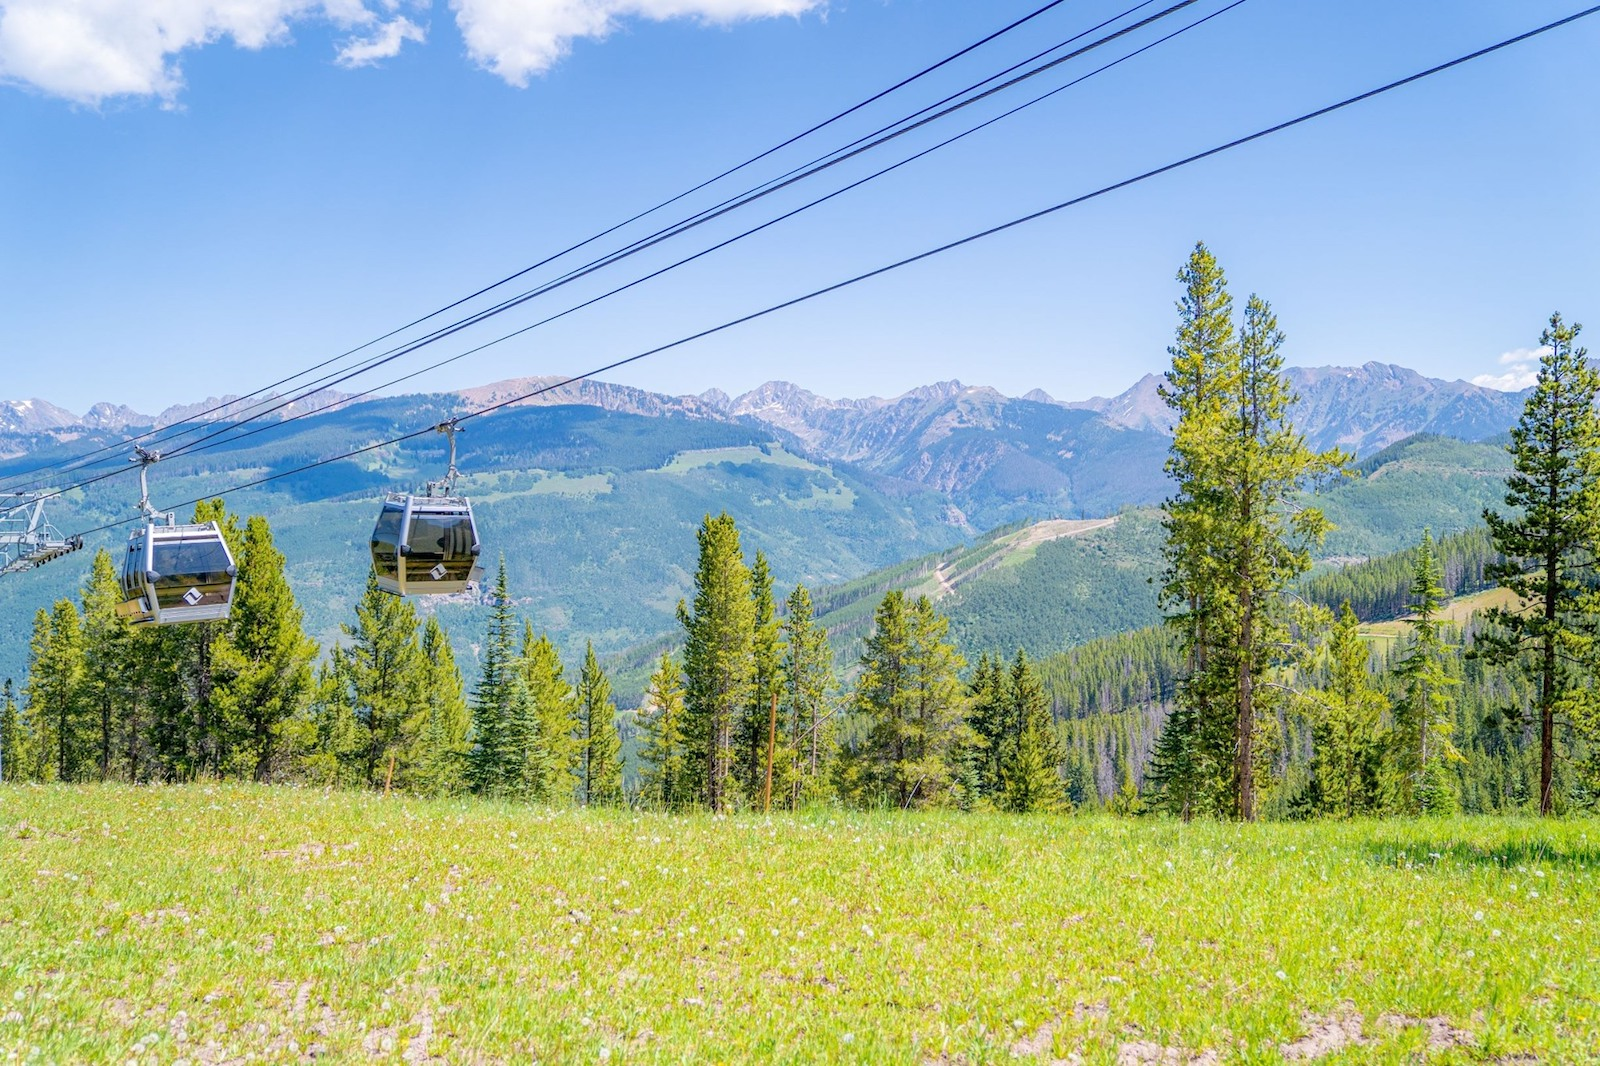 Image of the One Gondola during summer in Vail Resort, Colorado